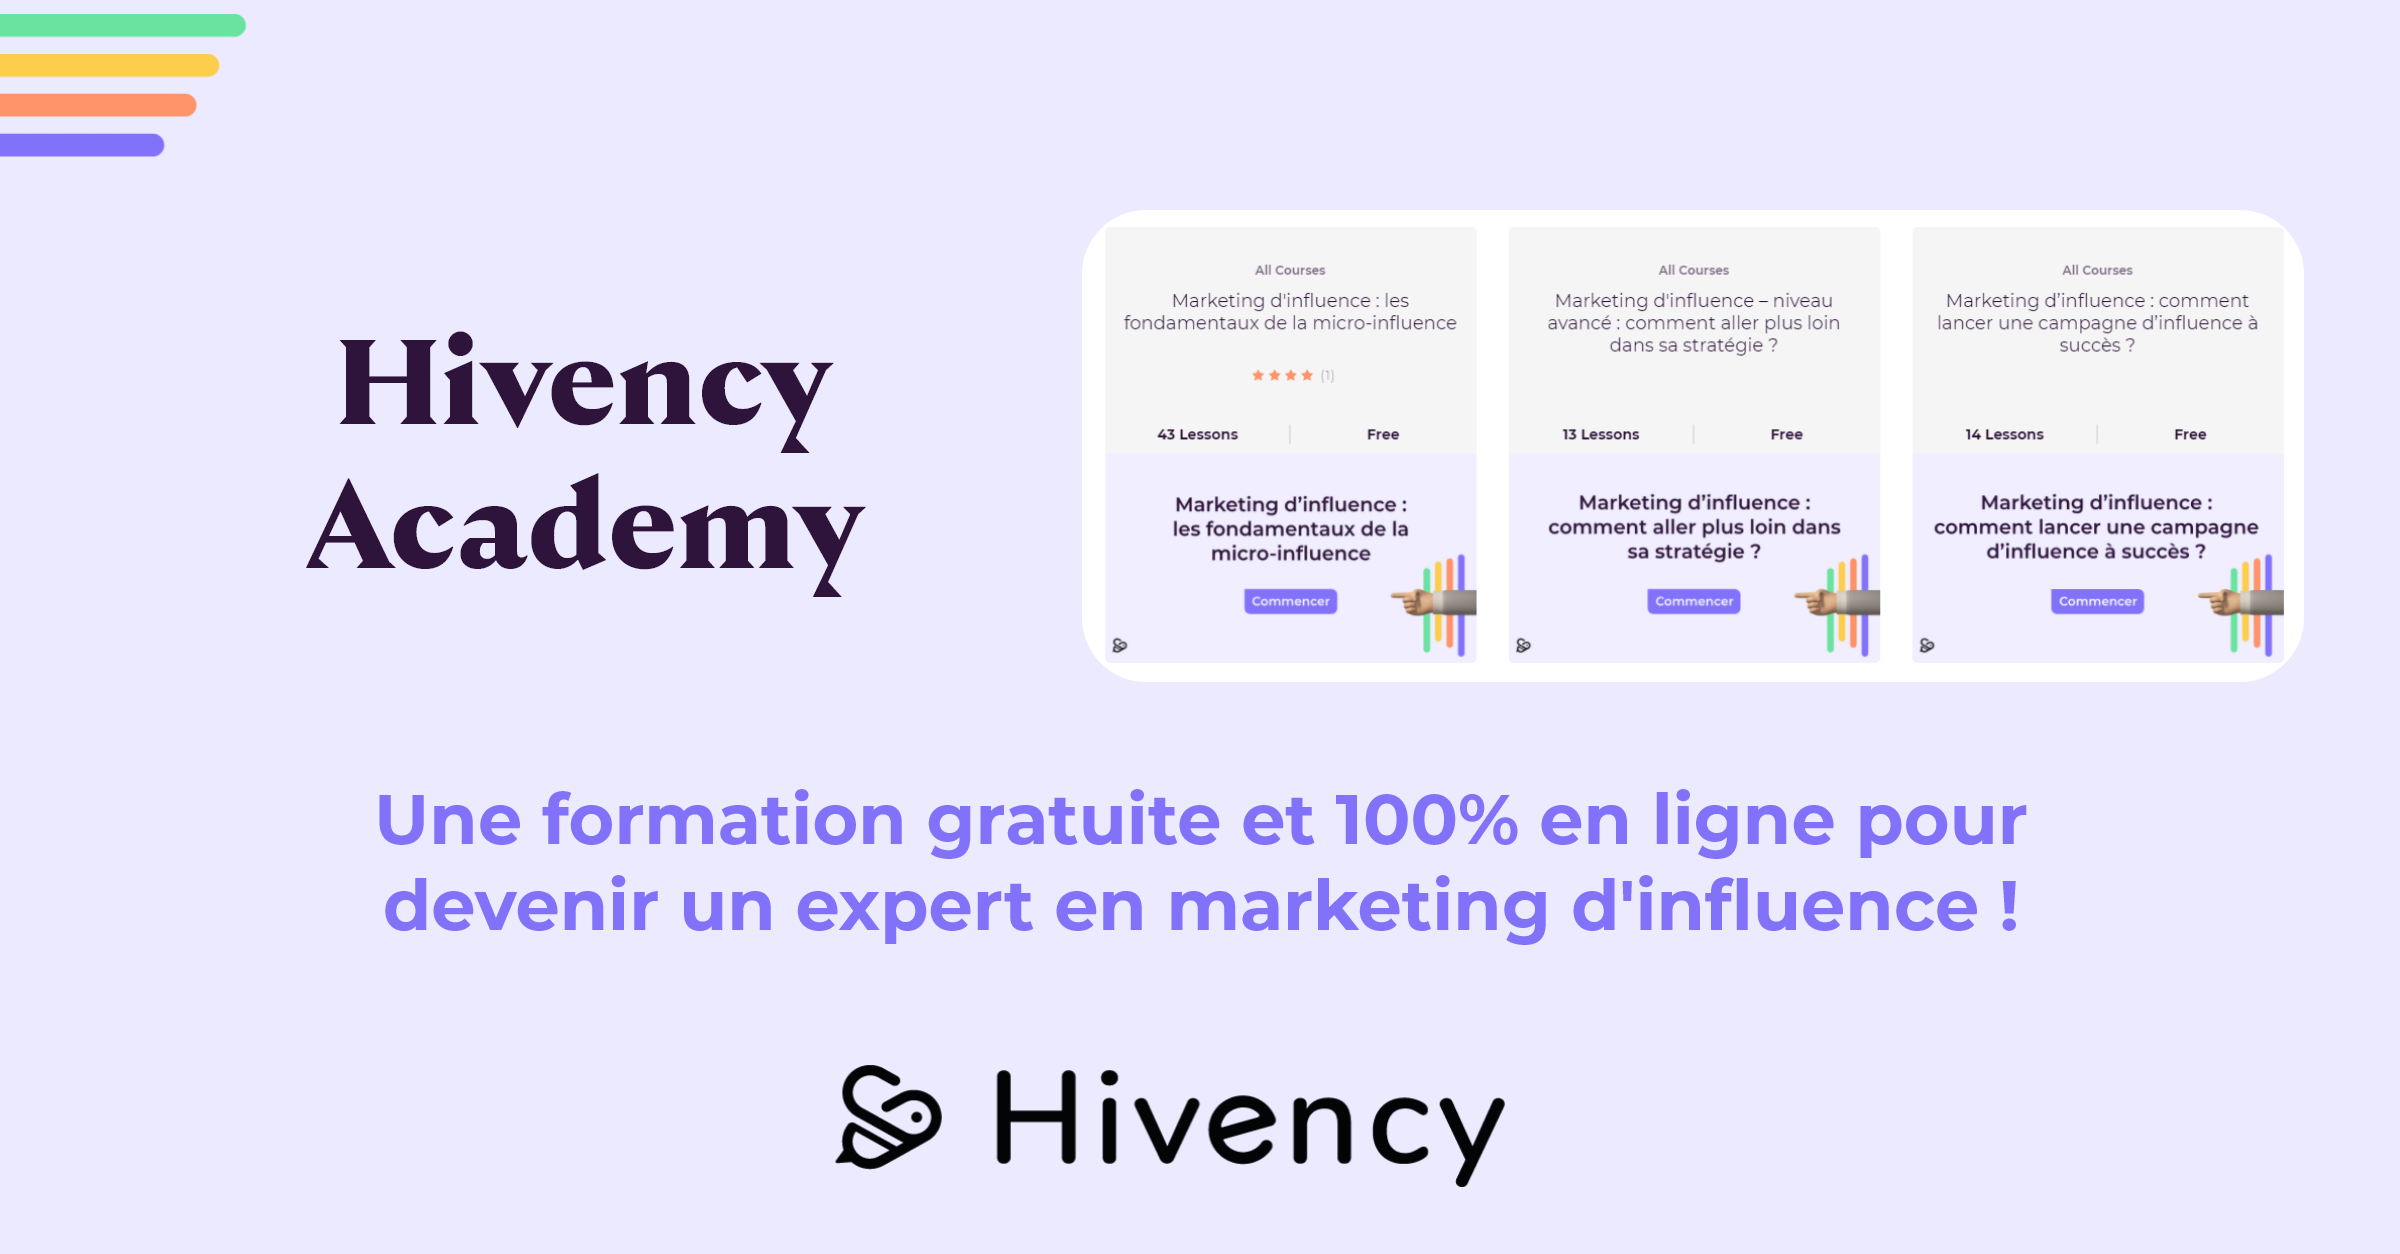 Hivency Academy